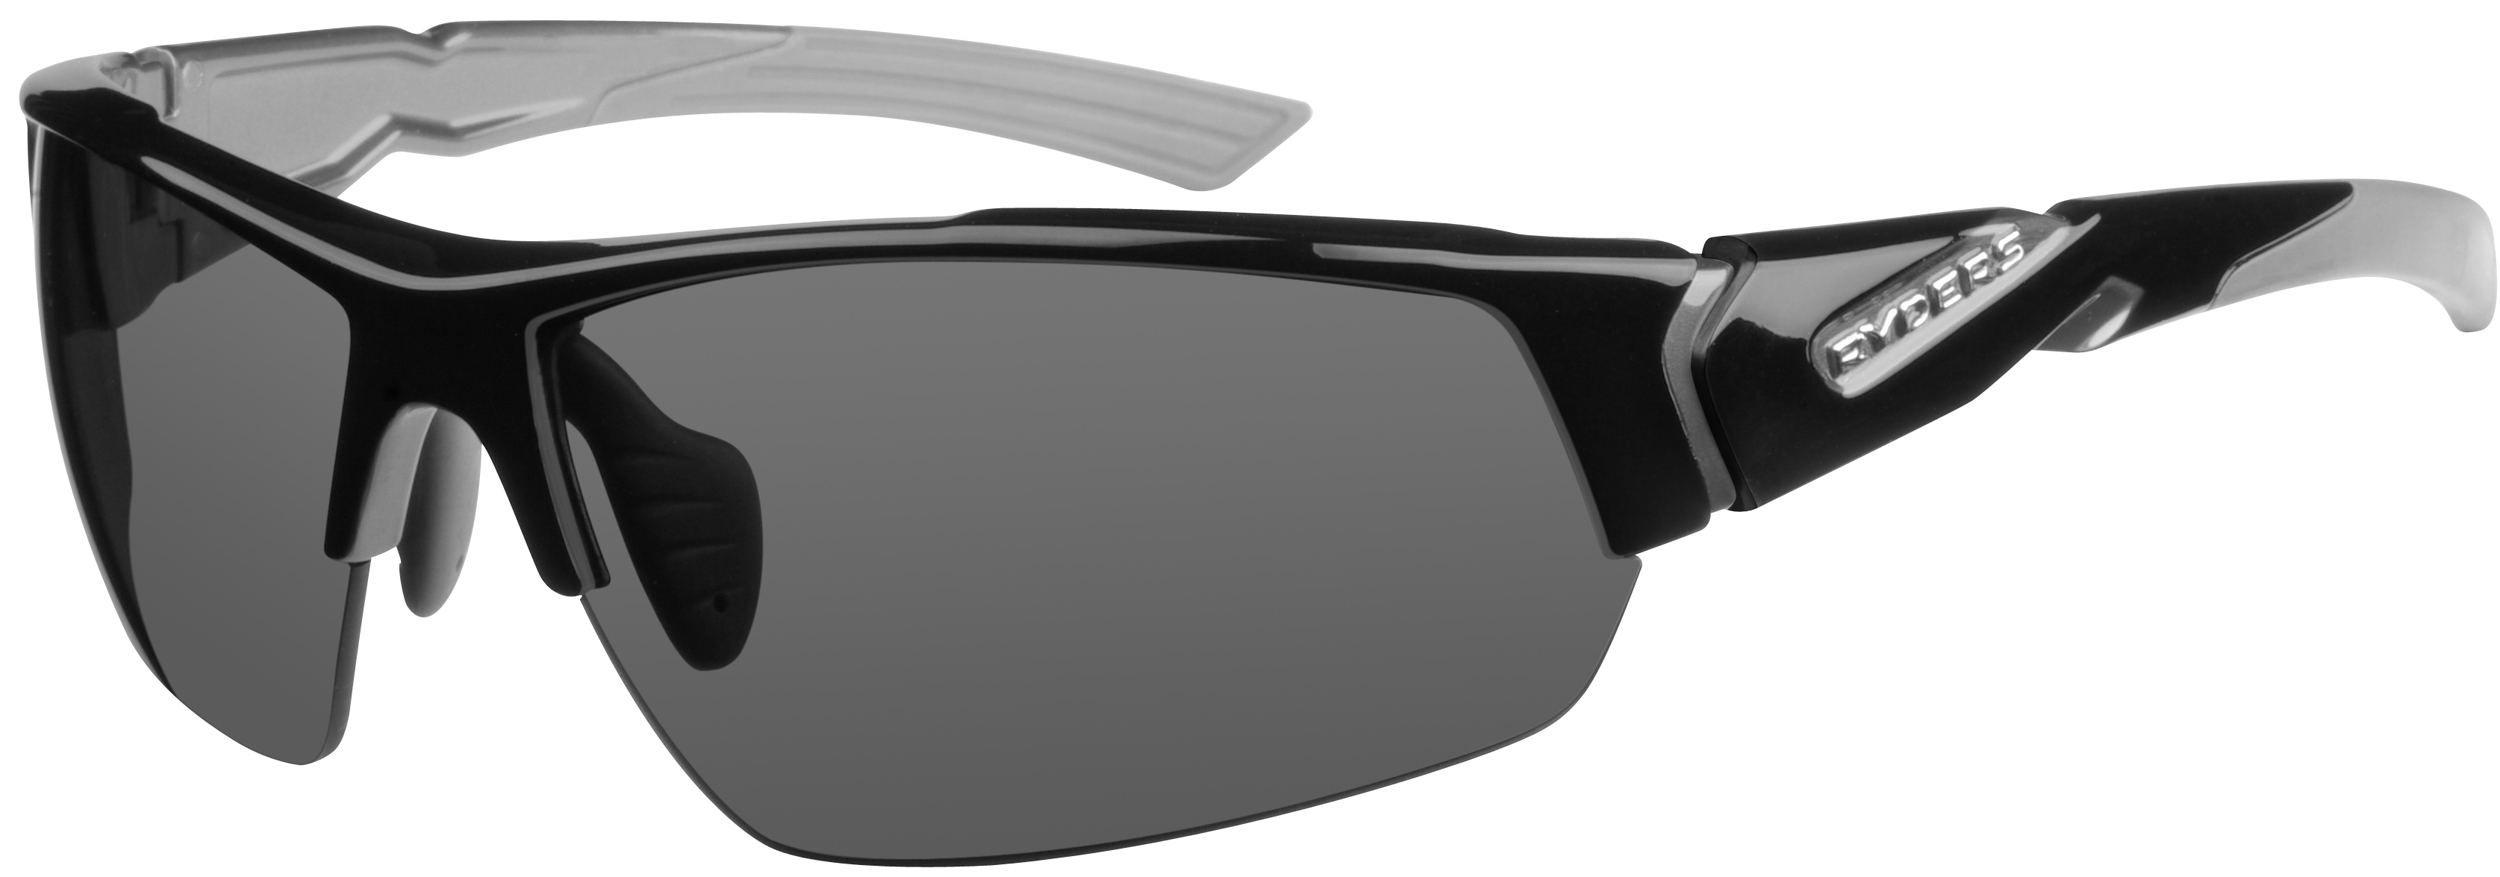 127b706929 Ryders Eyewear Strider Sunglasses - Unisex